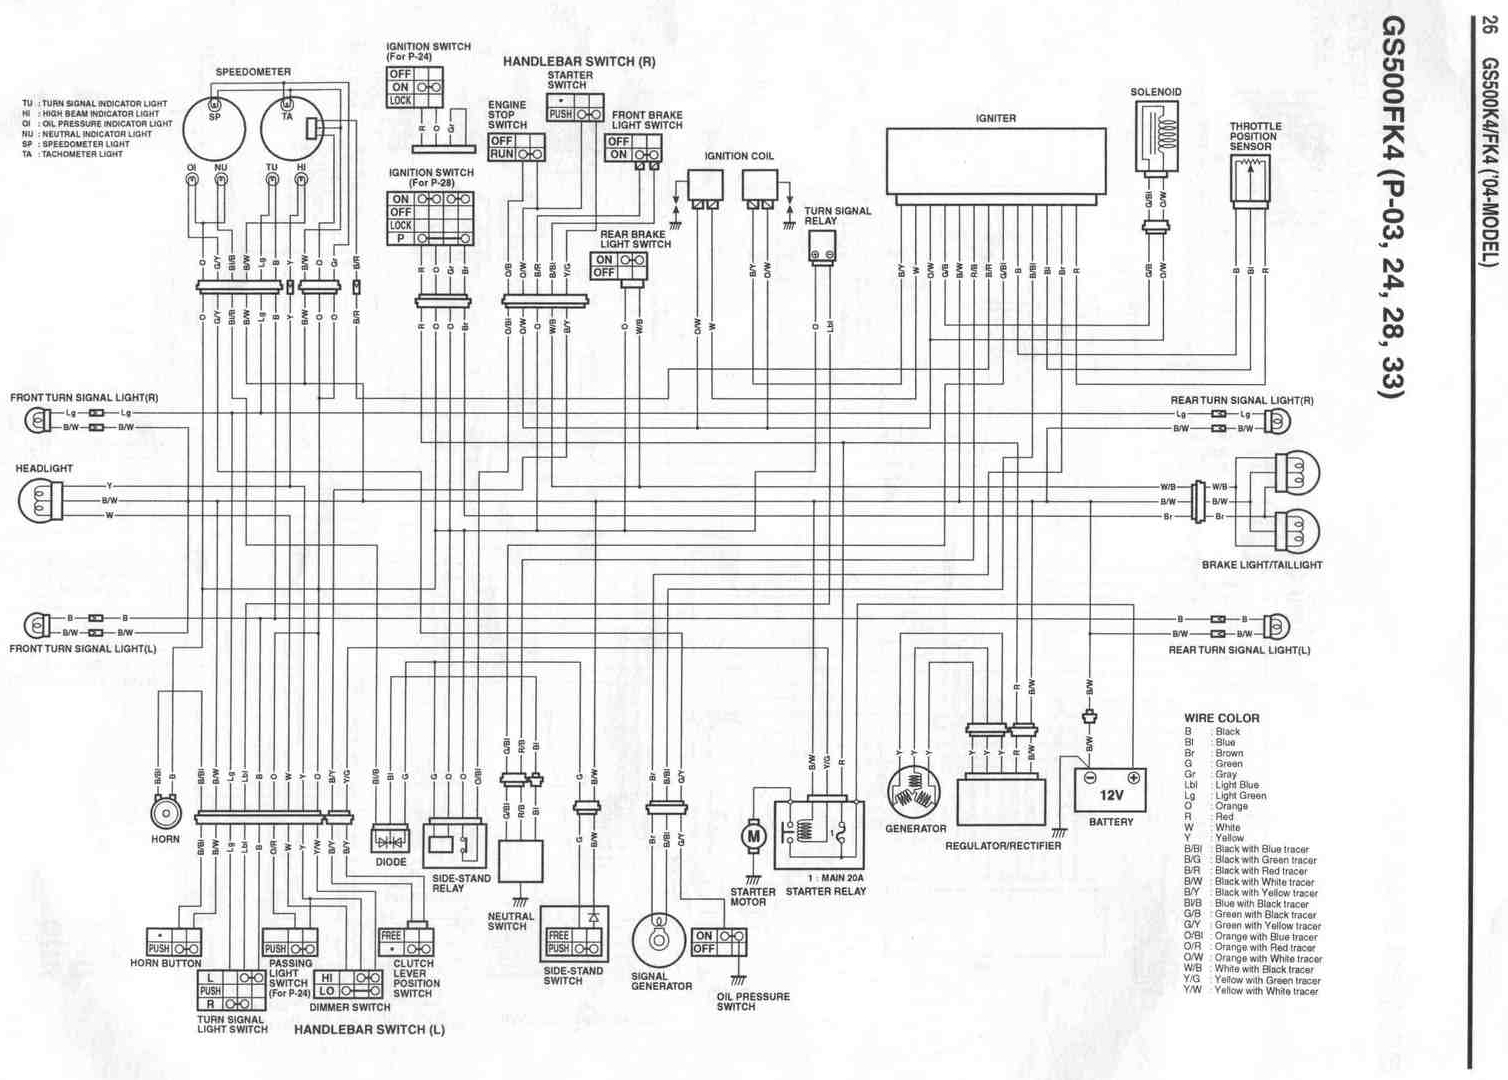 Suzuki_WiringDiagram_04 suzuki gs500 wiring diagram 95 suzuki gs500f wiring diagram \u2022 free 1978 gs750 wiring diagram at edmiracle.co